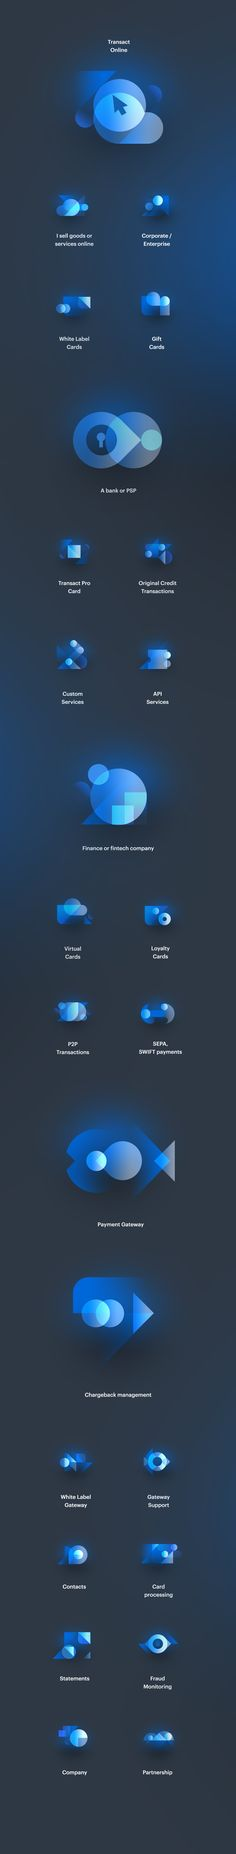 Transact Pro Icons on Behance